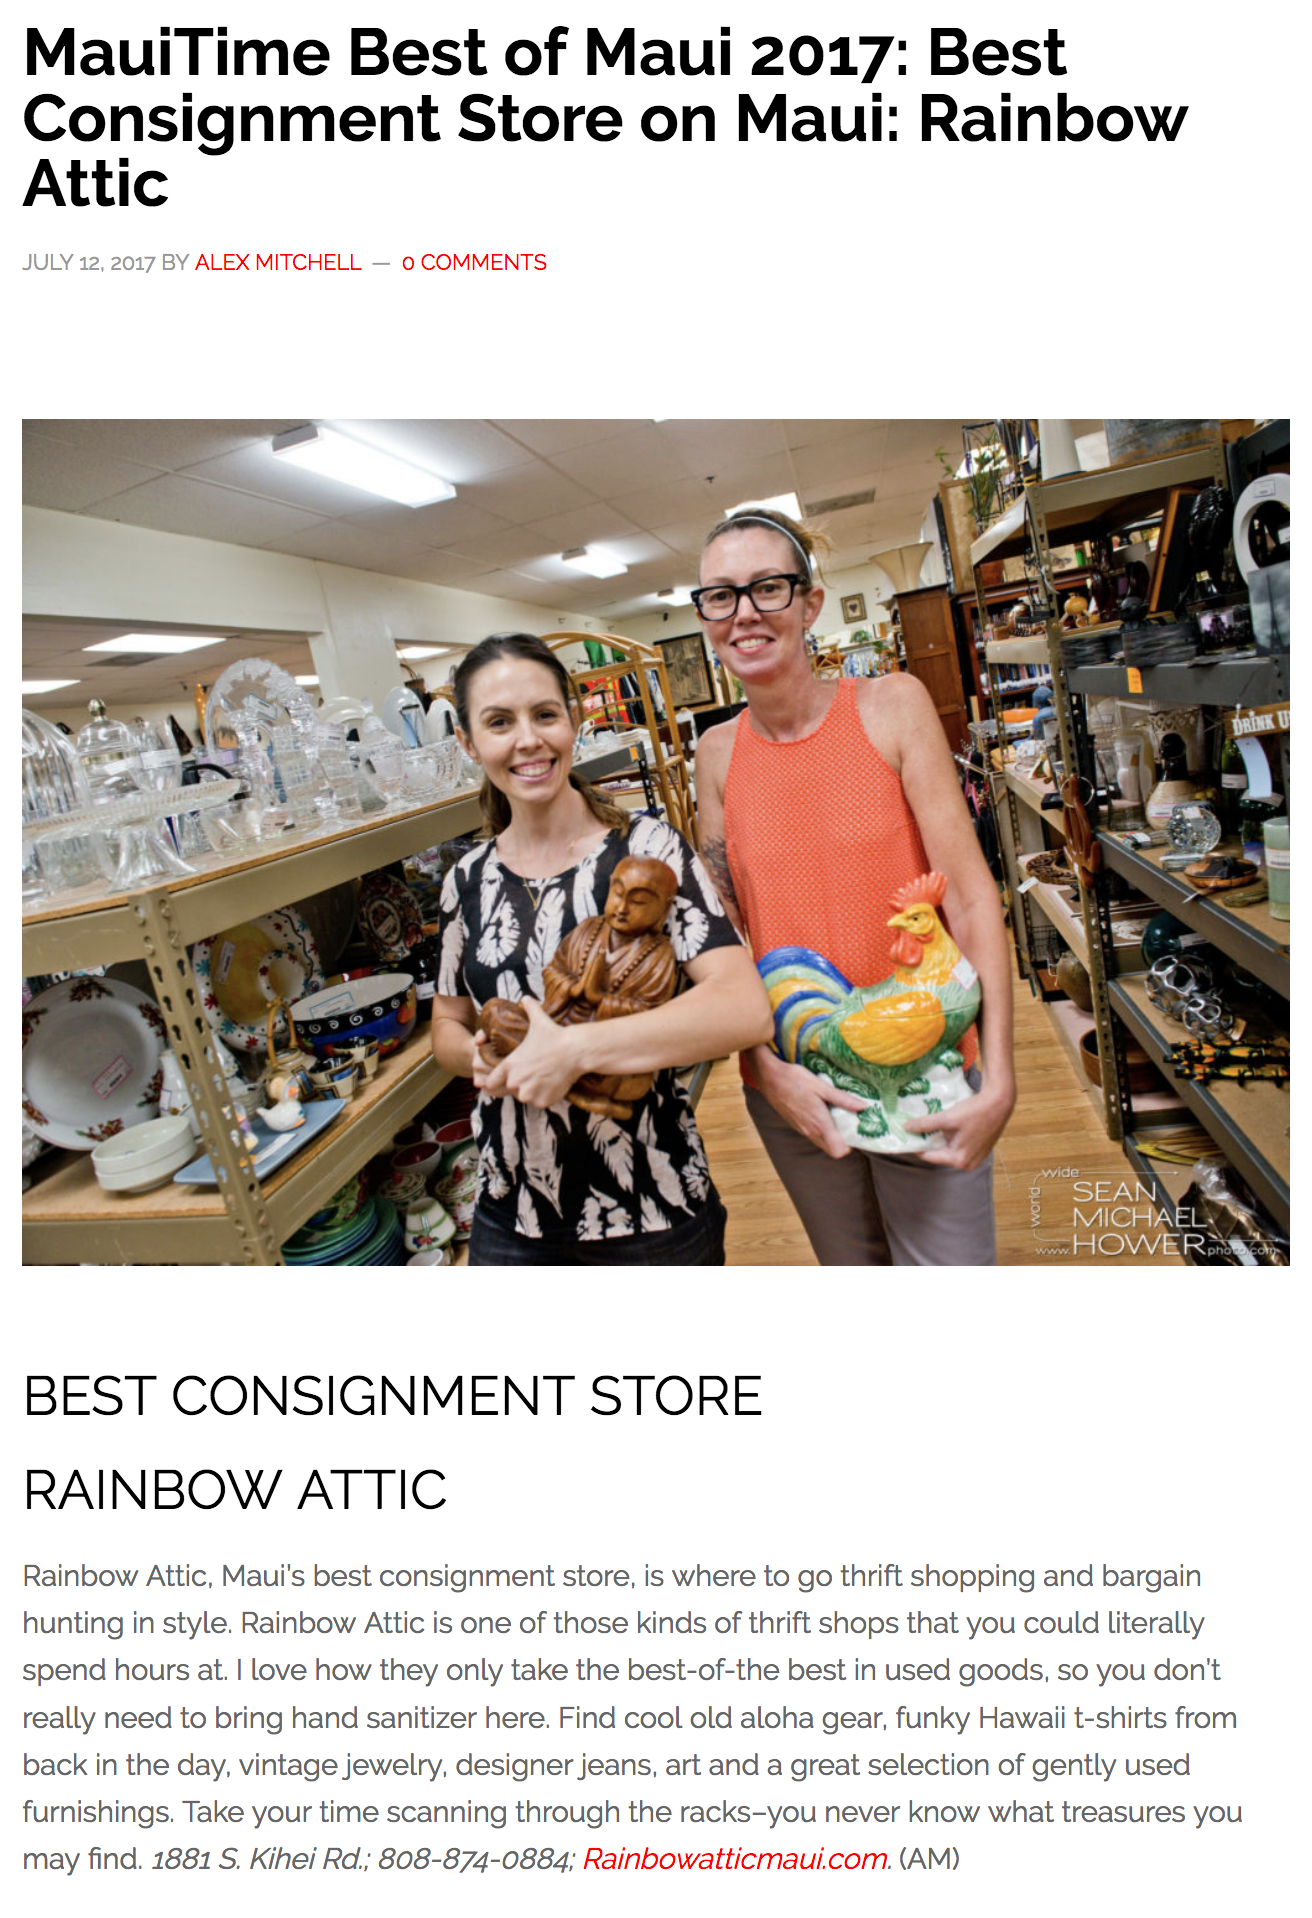 MauiTime Best of Maui 2017: Best Consignment Store on Maui: Rainbow Attic